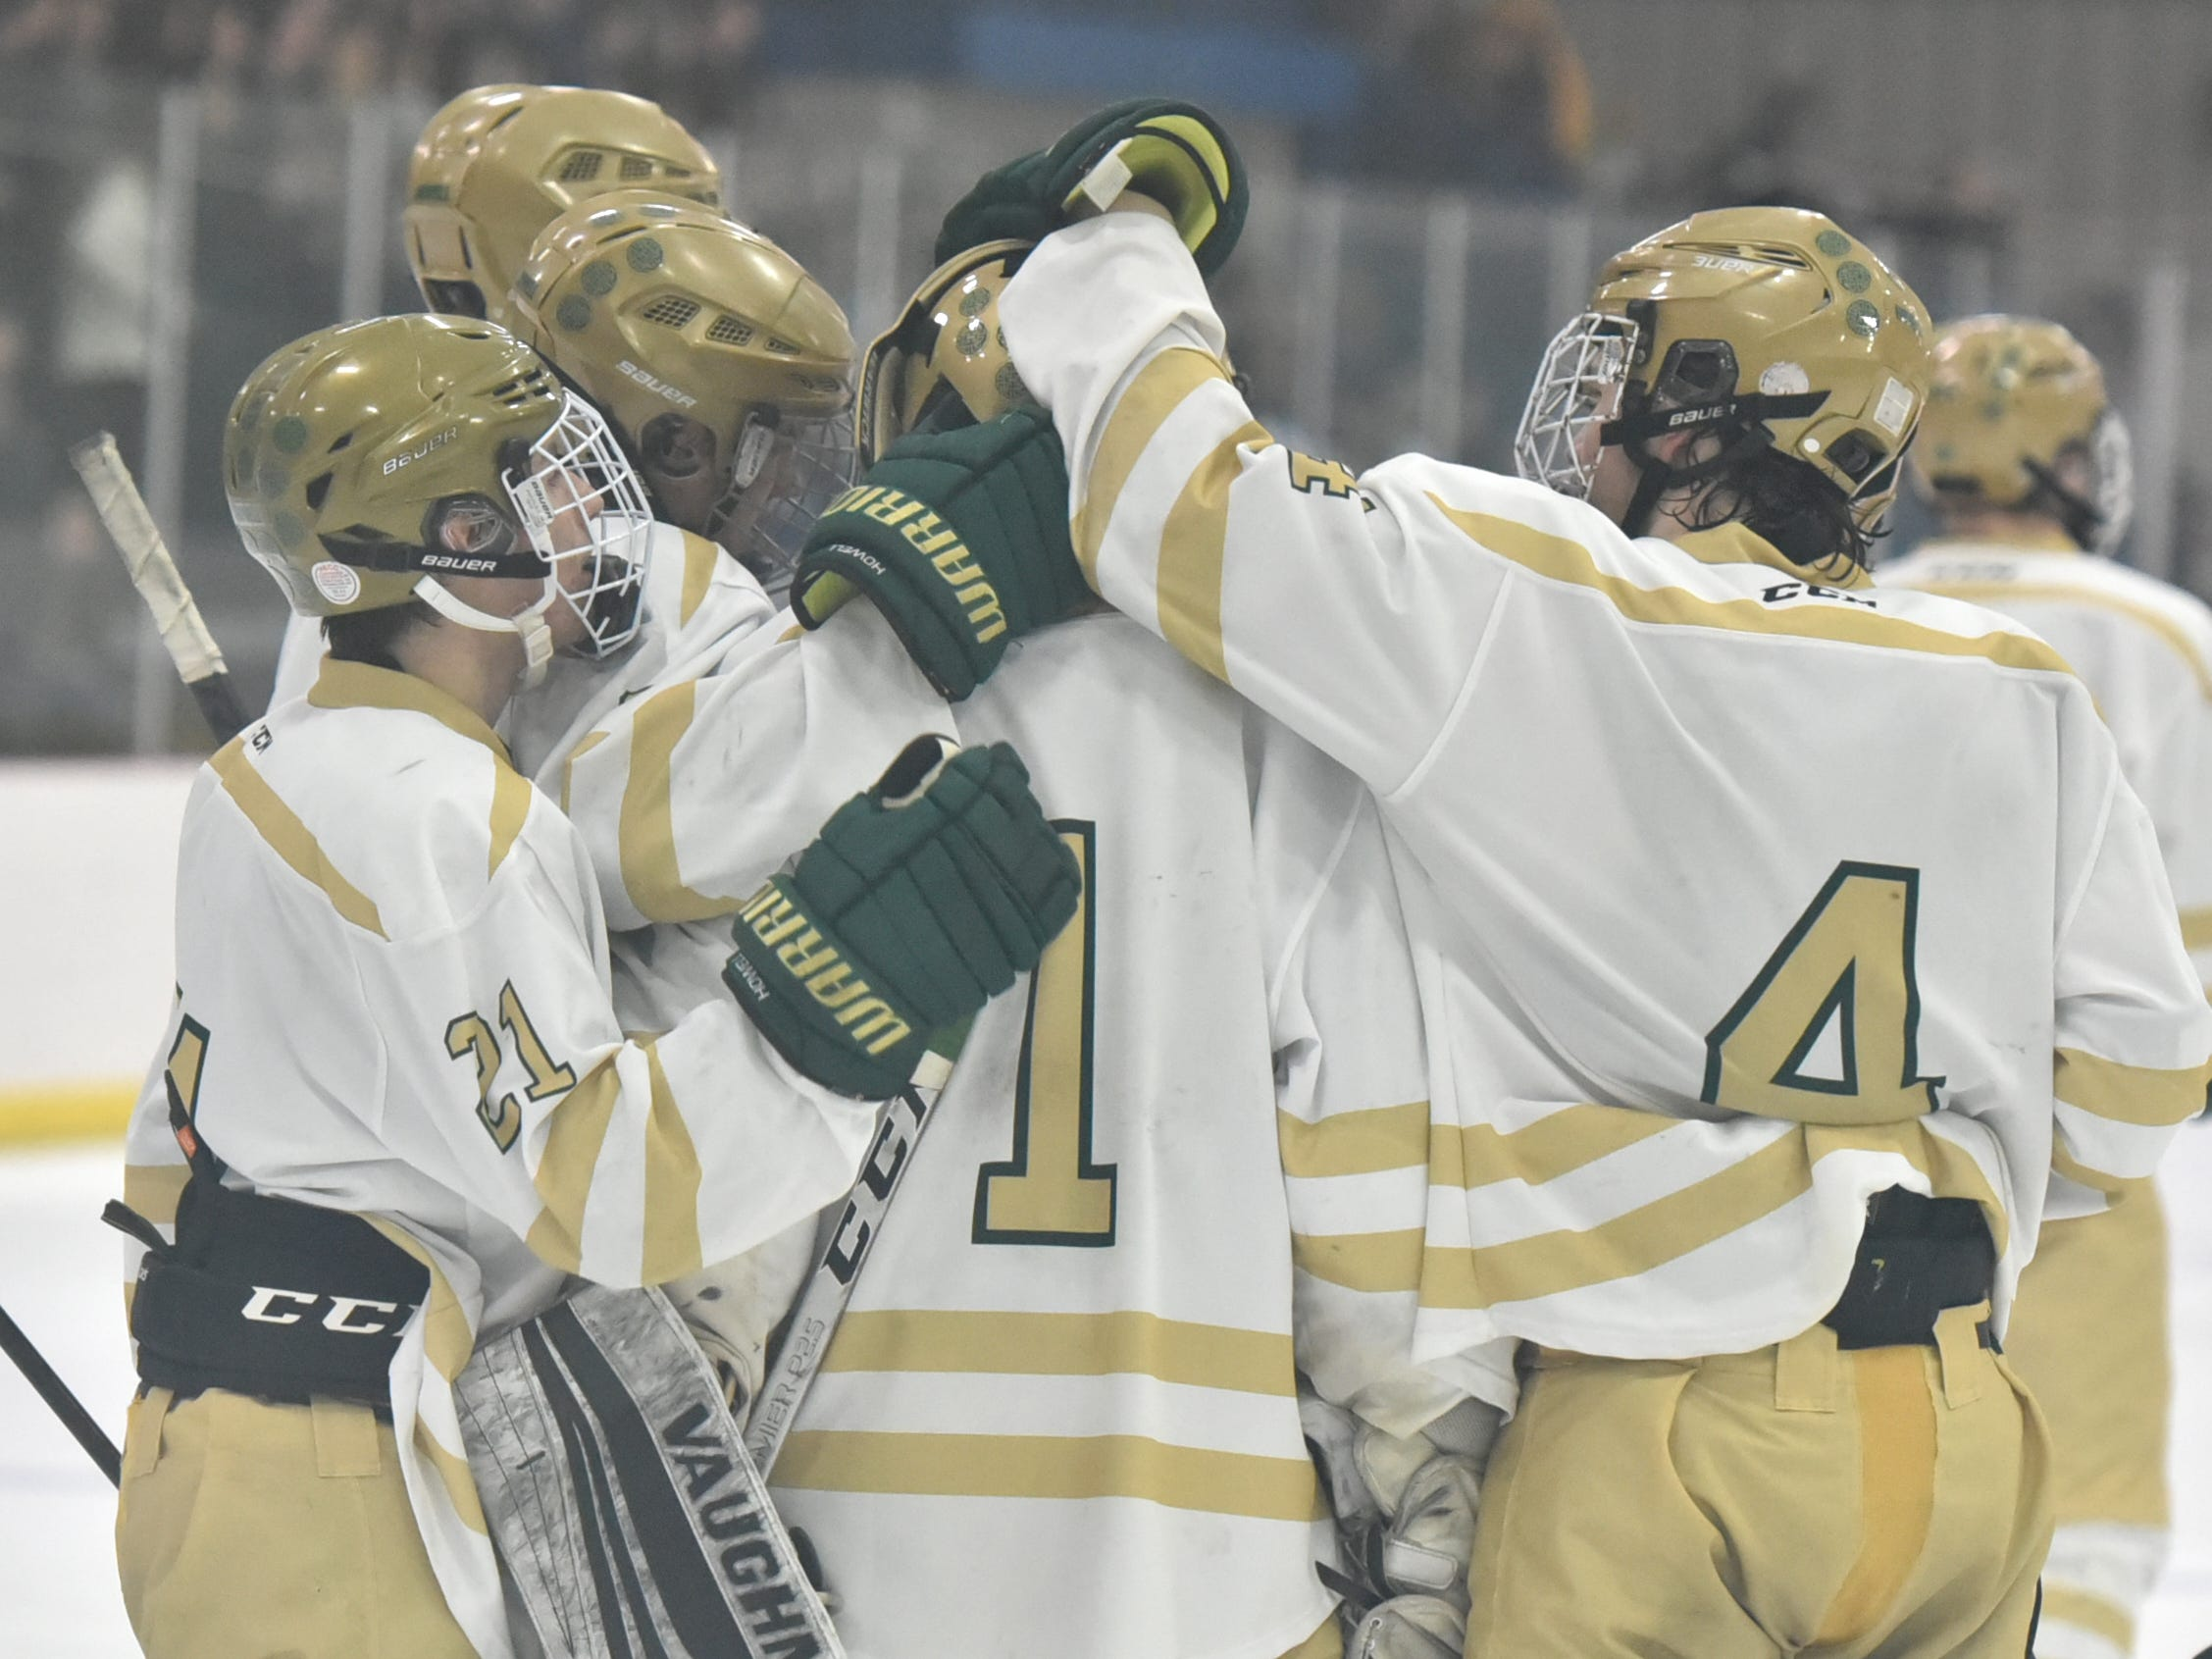 Howell hockey players congratulate goalie Ethan Ryan on a huge performance in a 3-0 loss to Livonia Stevenson in the regional championship game on Saturday, March 2, 2019 at Novi Ice Arena.